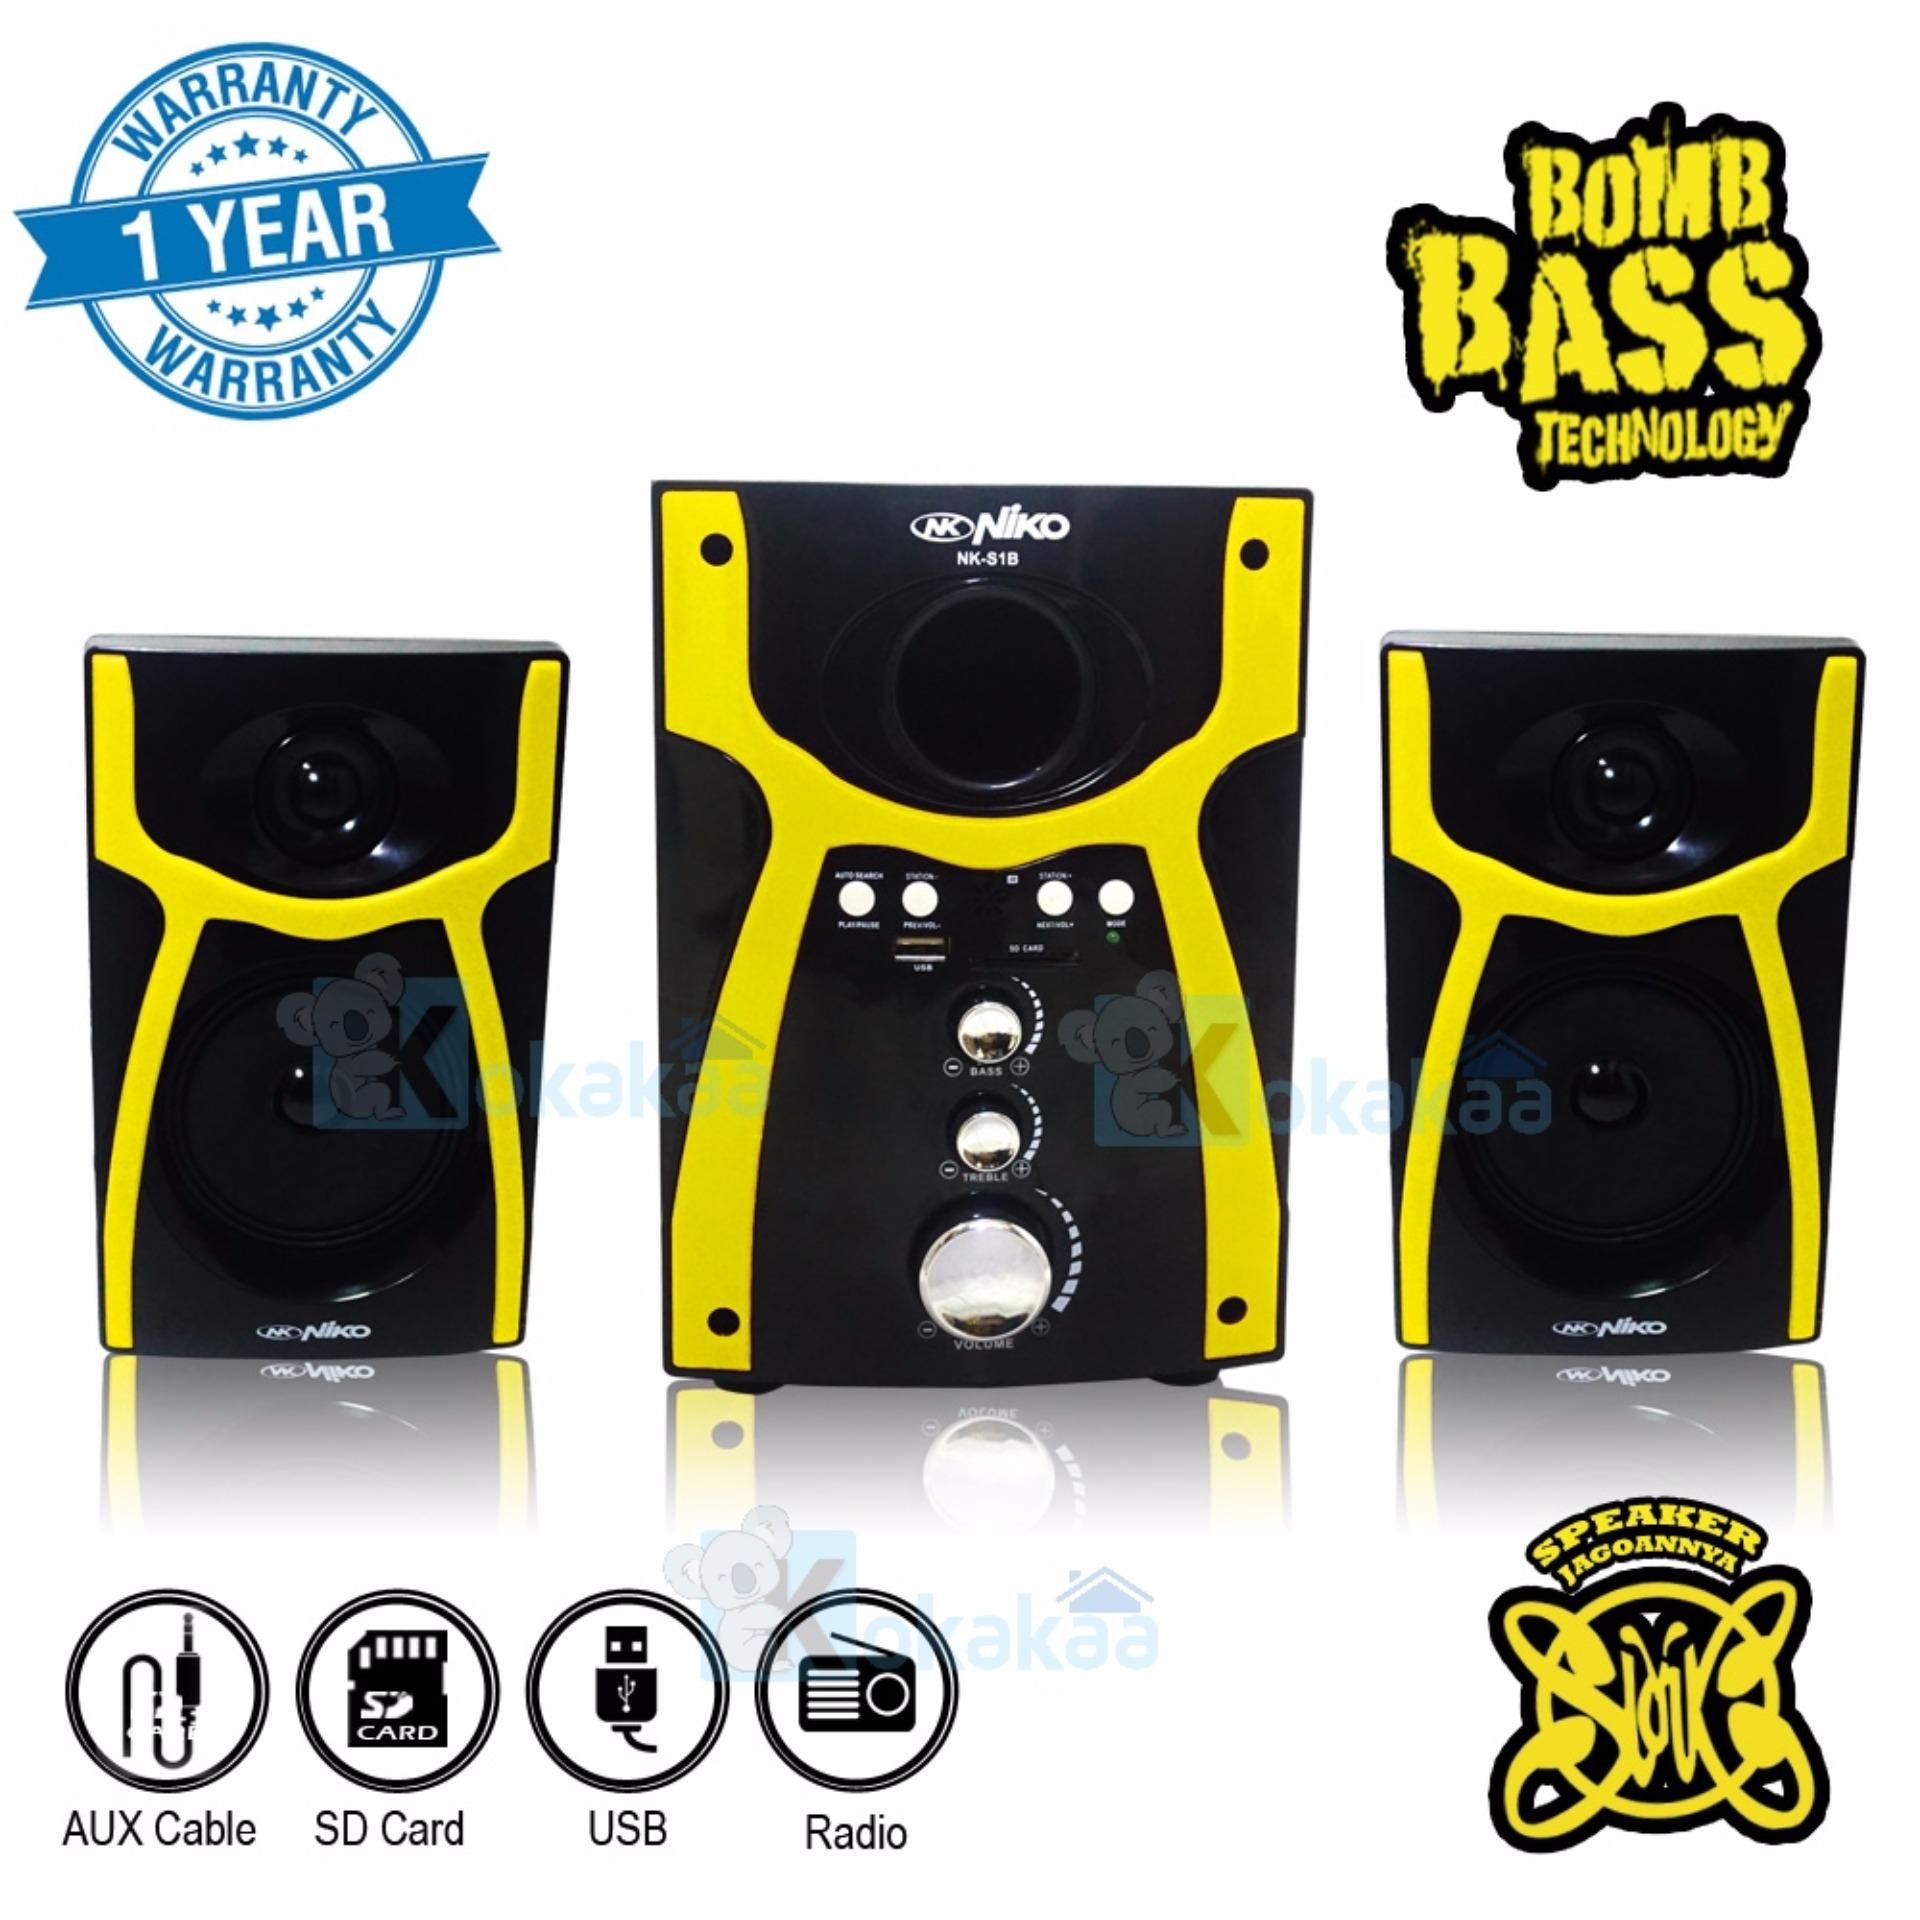 Promo Niko Slank Speaker Super Woofer Bomb Bass Technology Pengeras Suara Nk S1X Kuning Di Indonesia